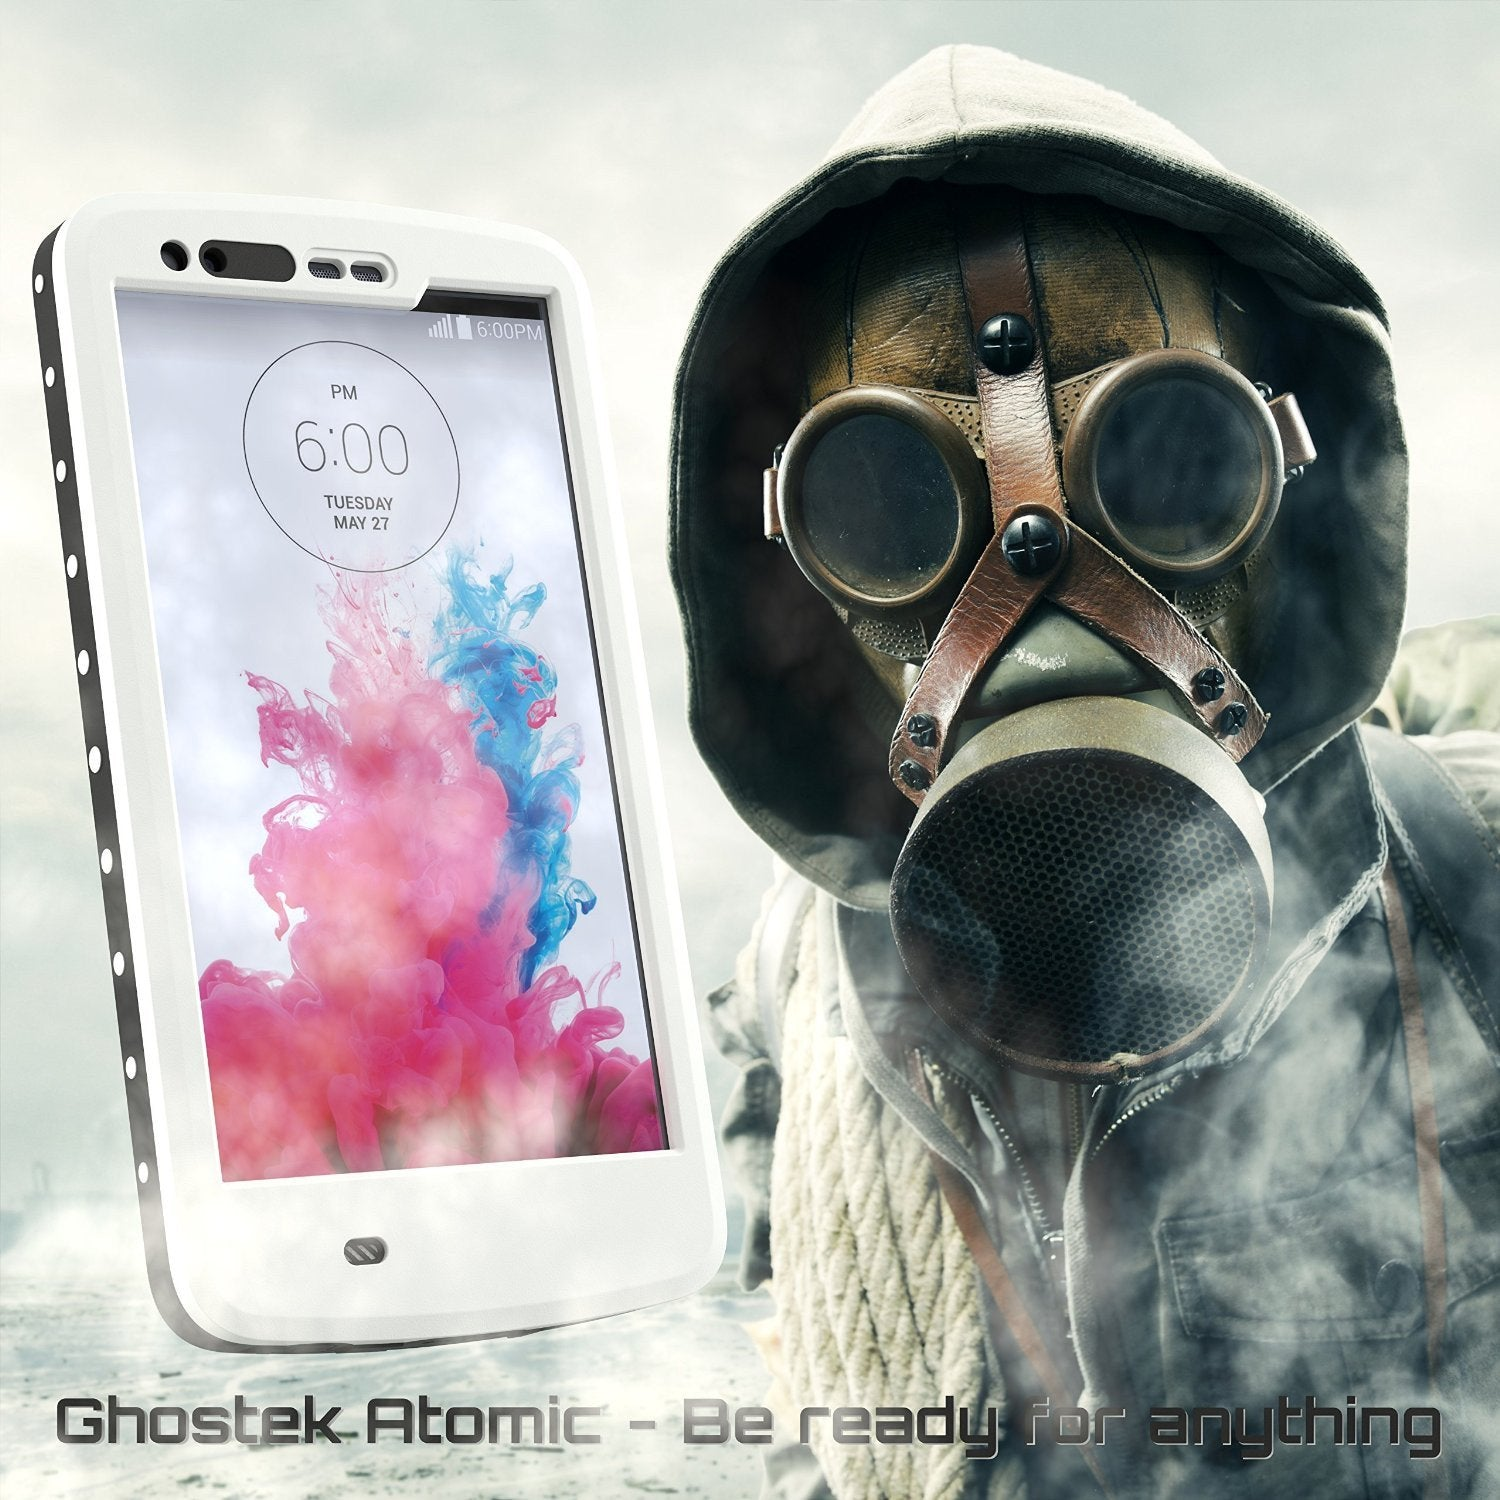 LG G3 Waterproof Case, Ghostek Atomic White W/ Attached Screen Protector LG G3 Slim Fitted